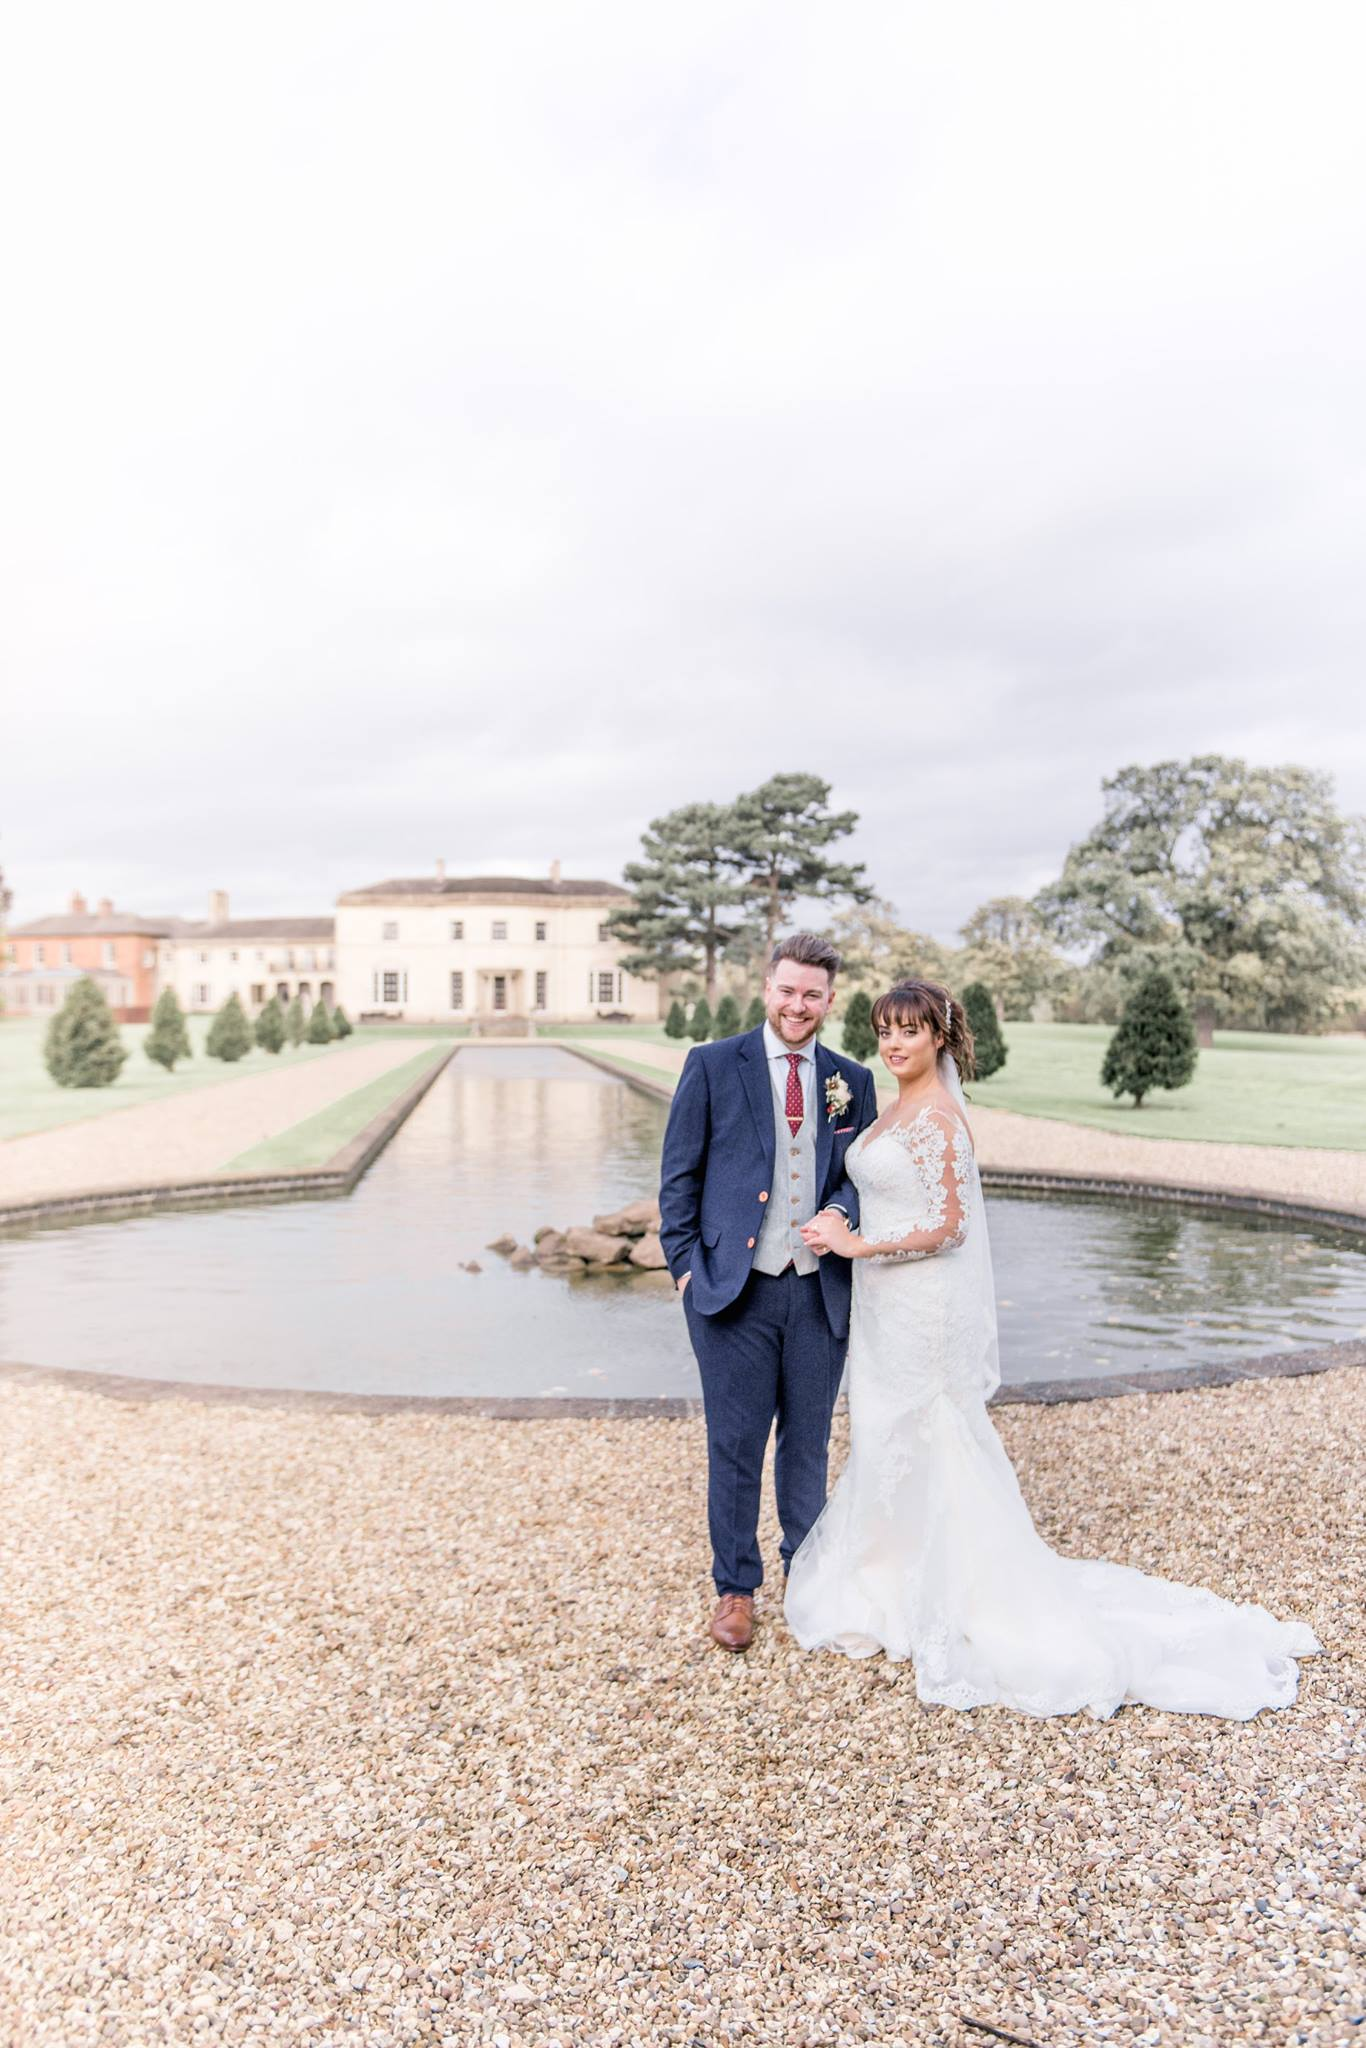 Lucy & Josh Married at the superb Stubton Hall in Newark